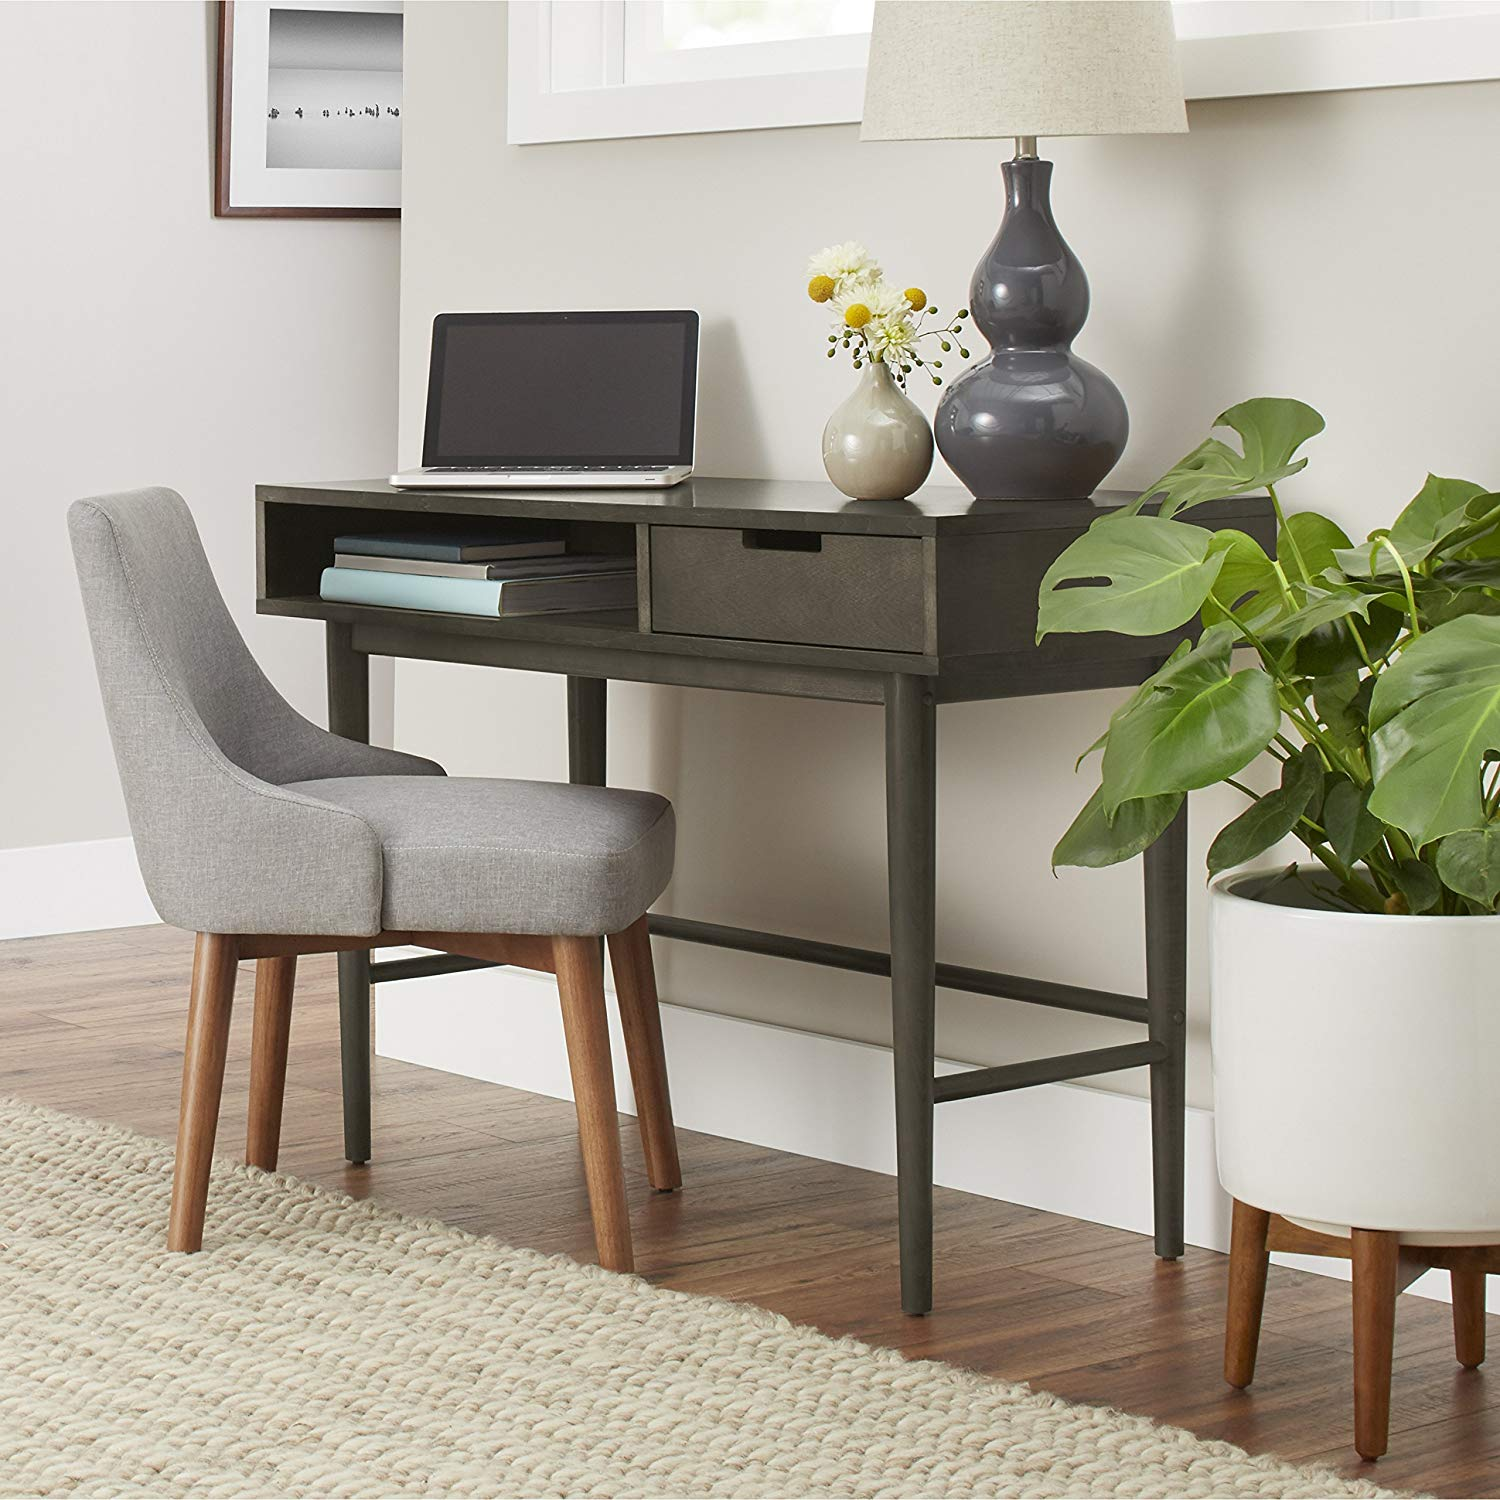 Mid Century Modern Desk, Gray Finish, Veneered Finish, Solid Wood Legs, Office, Home, Open Storage Space, Drawer, Bundle with Our Expert Guide with Tips for Home Arrangement